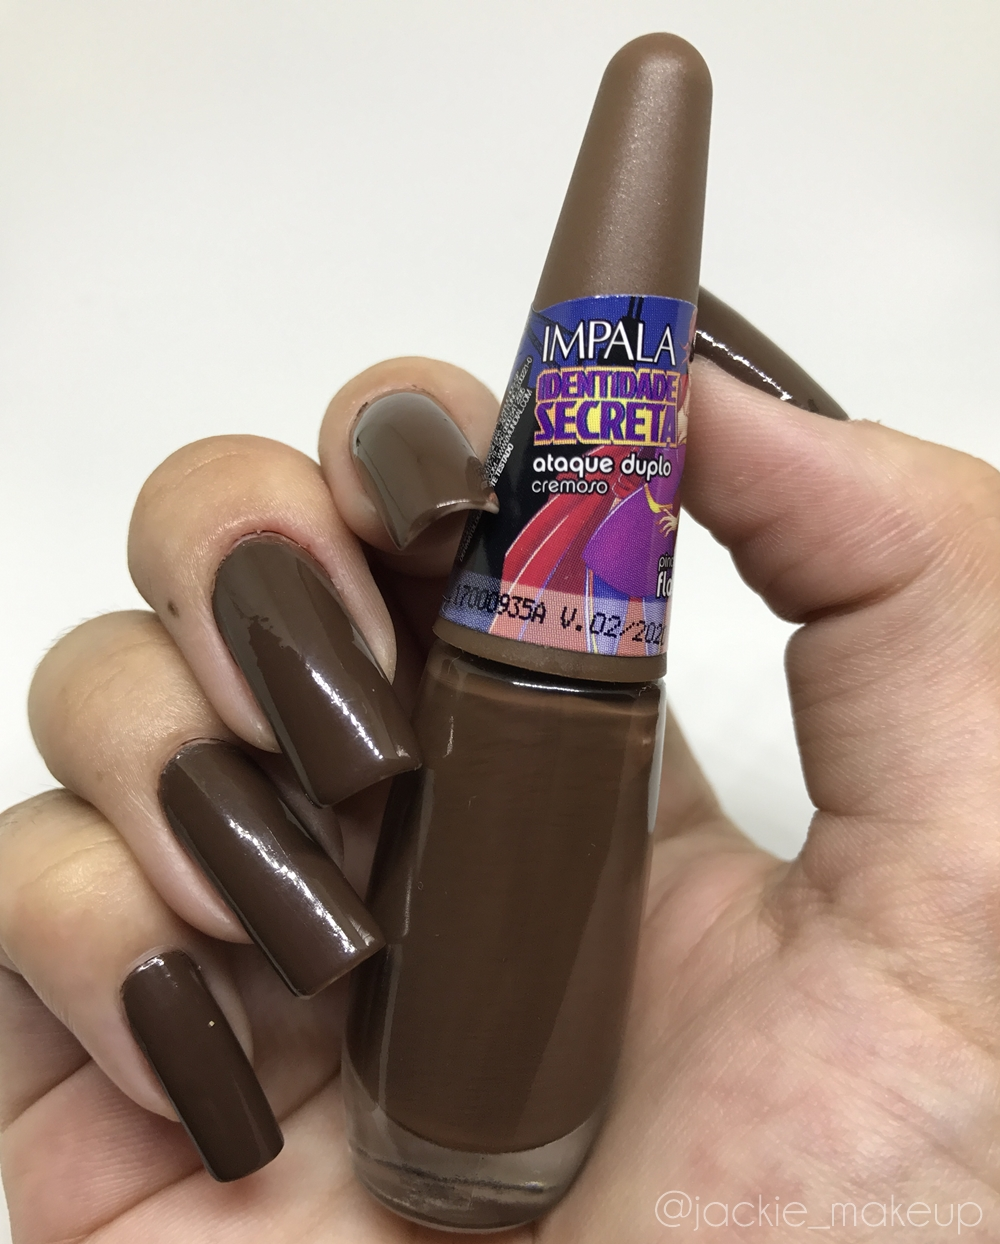 Usando Spray Ice Charming Cless no esmalte ataque duplo impala